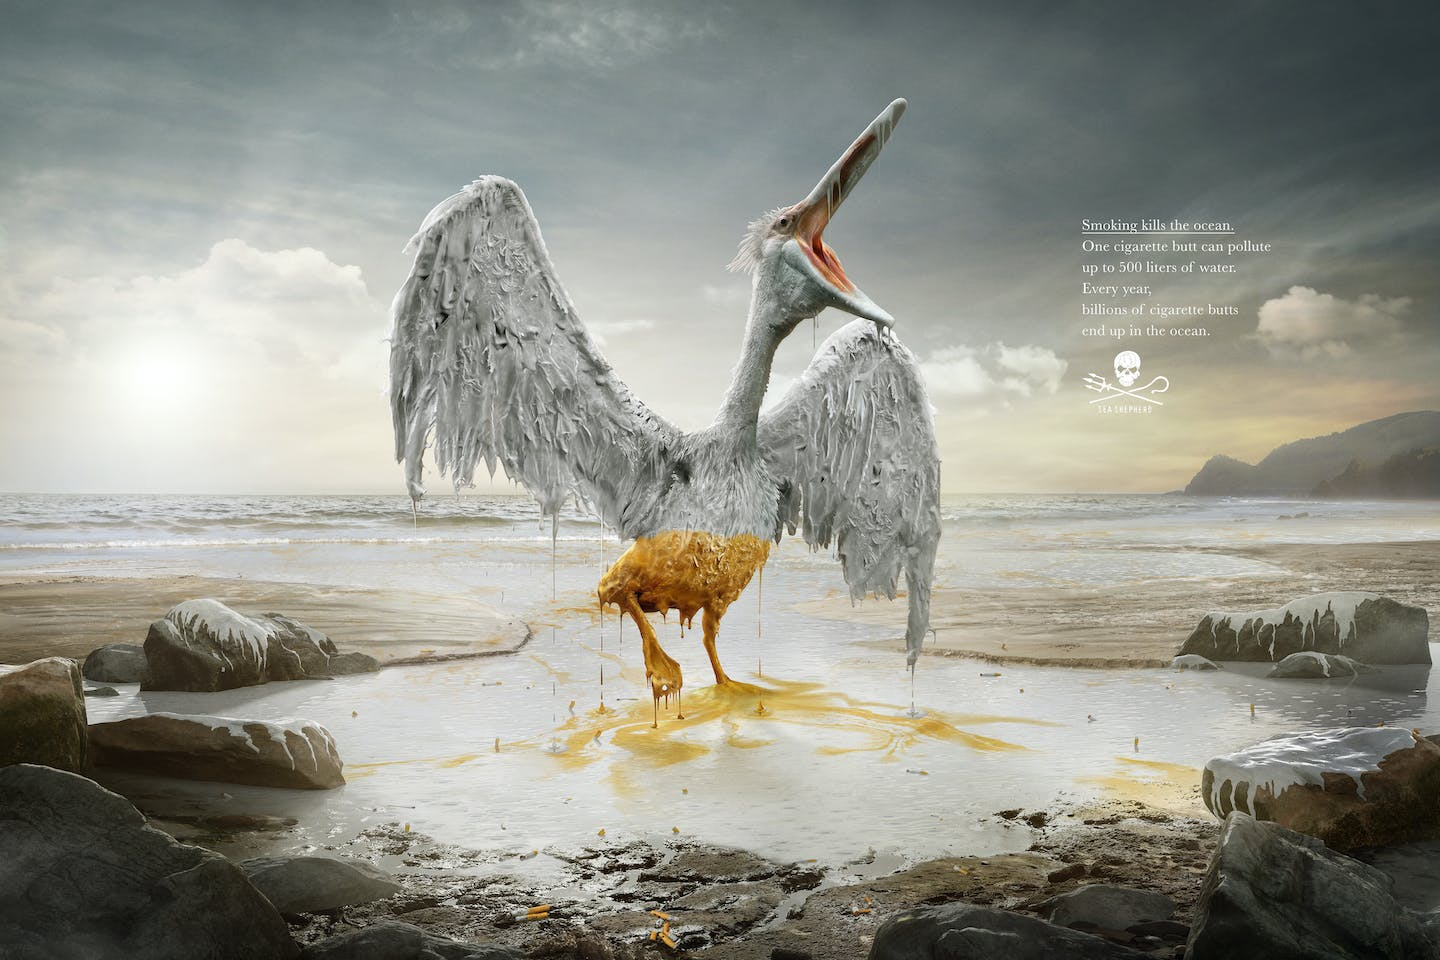 An advertisement for green group Sea Shepherd highlights the ecosystem damage of cigarette butt pollution to mark World Oceans Day. A single cigarette can pollute 500 litres of water, the ad warns. Image: Sea Shepherd